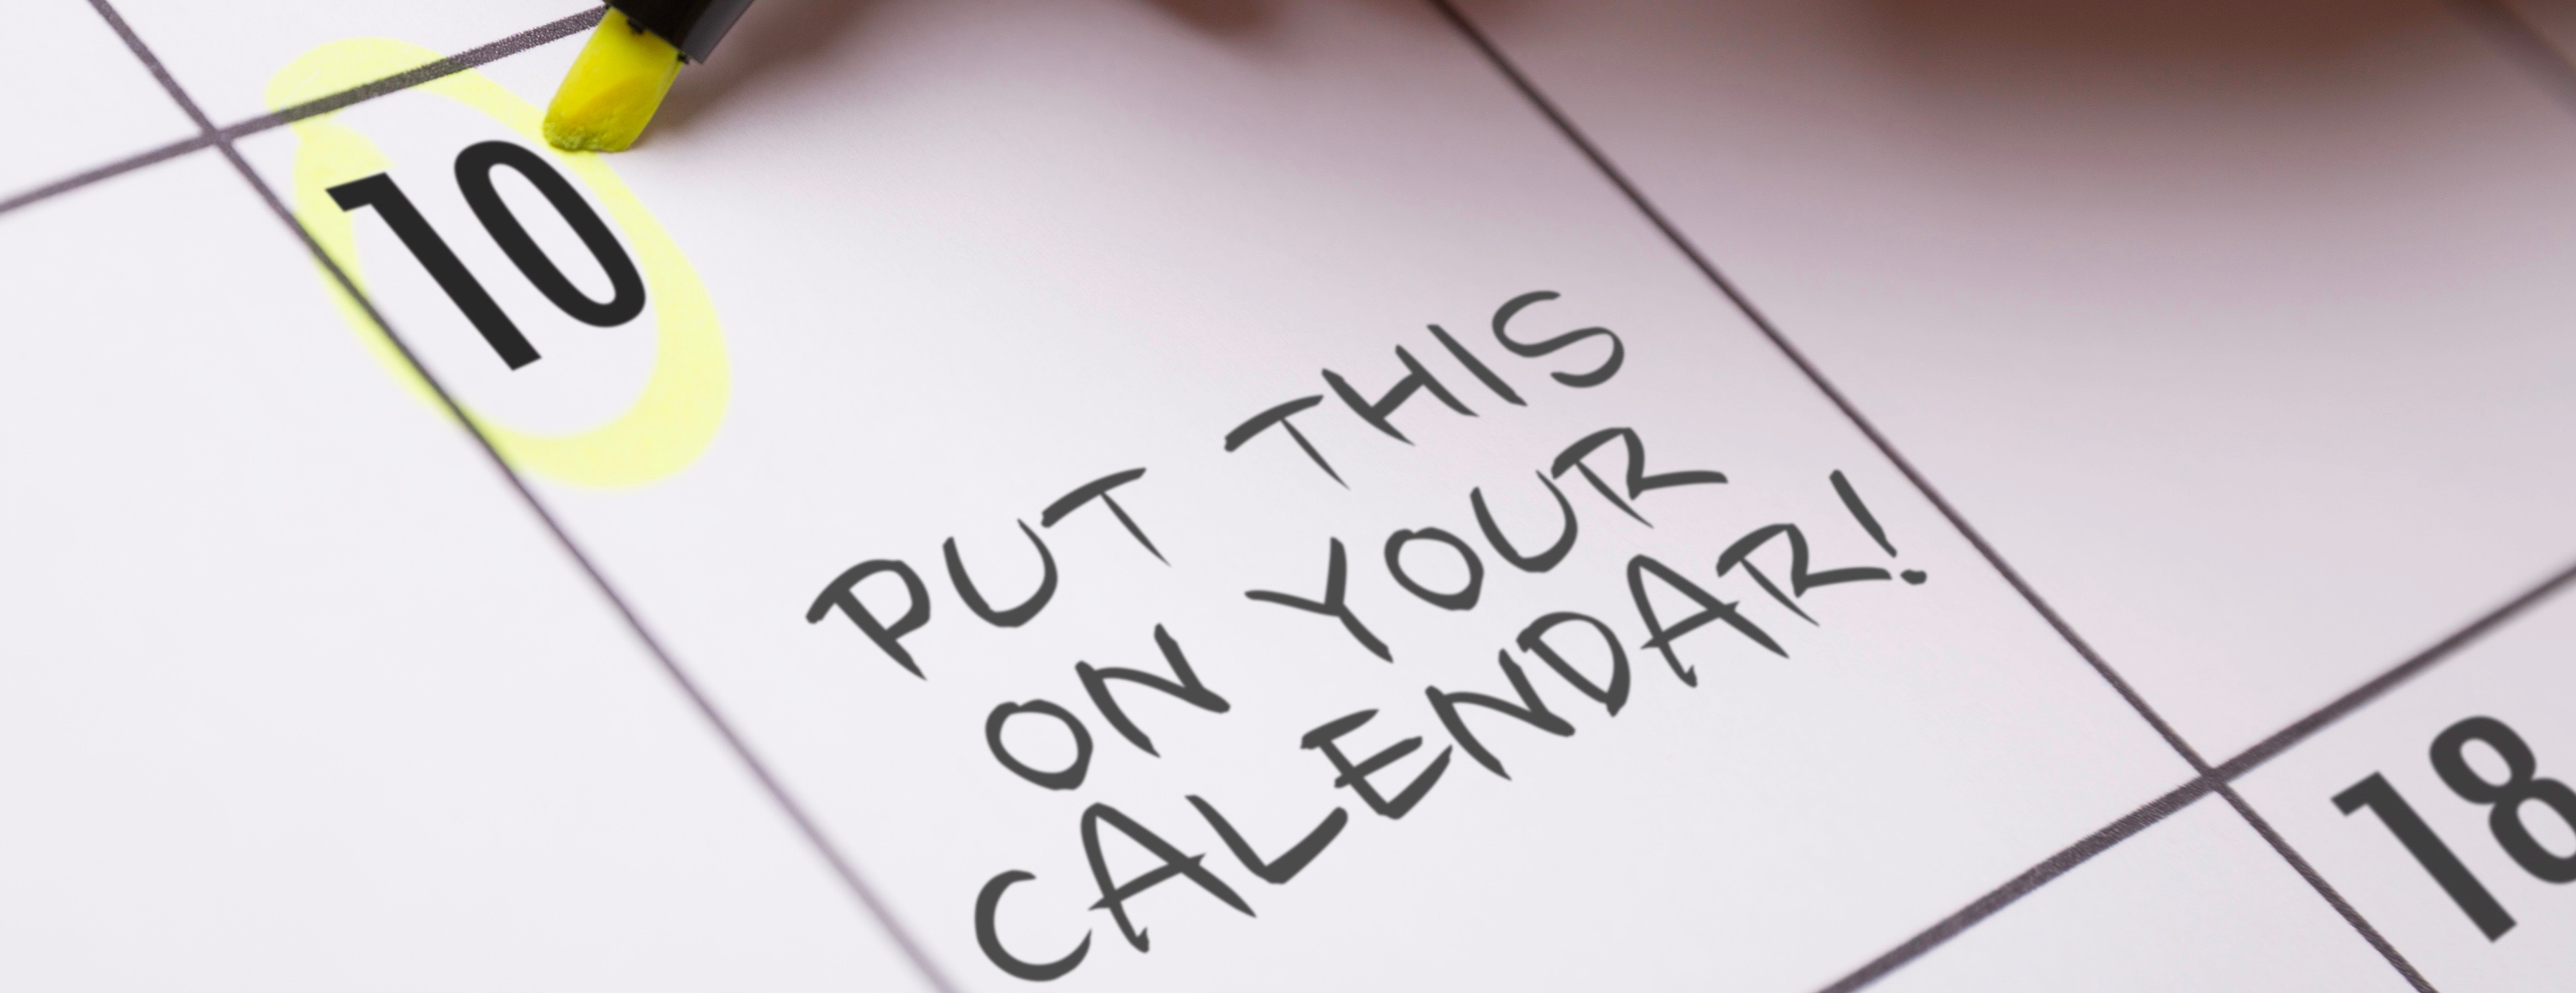 Save the Date calendar-cropped.jpg